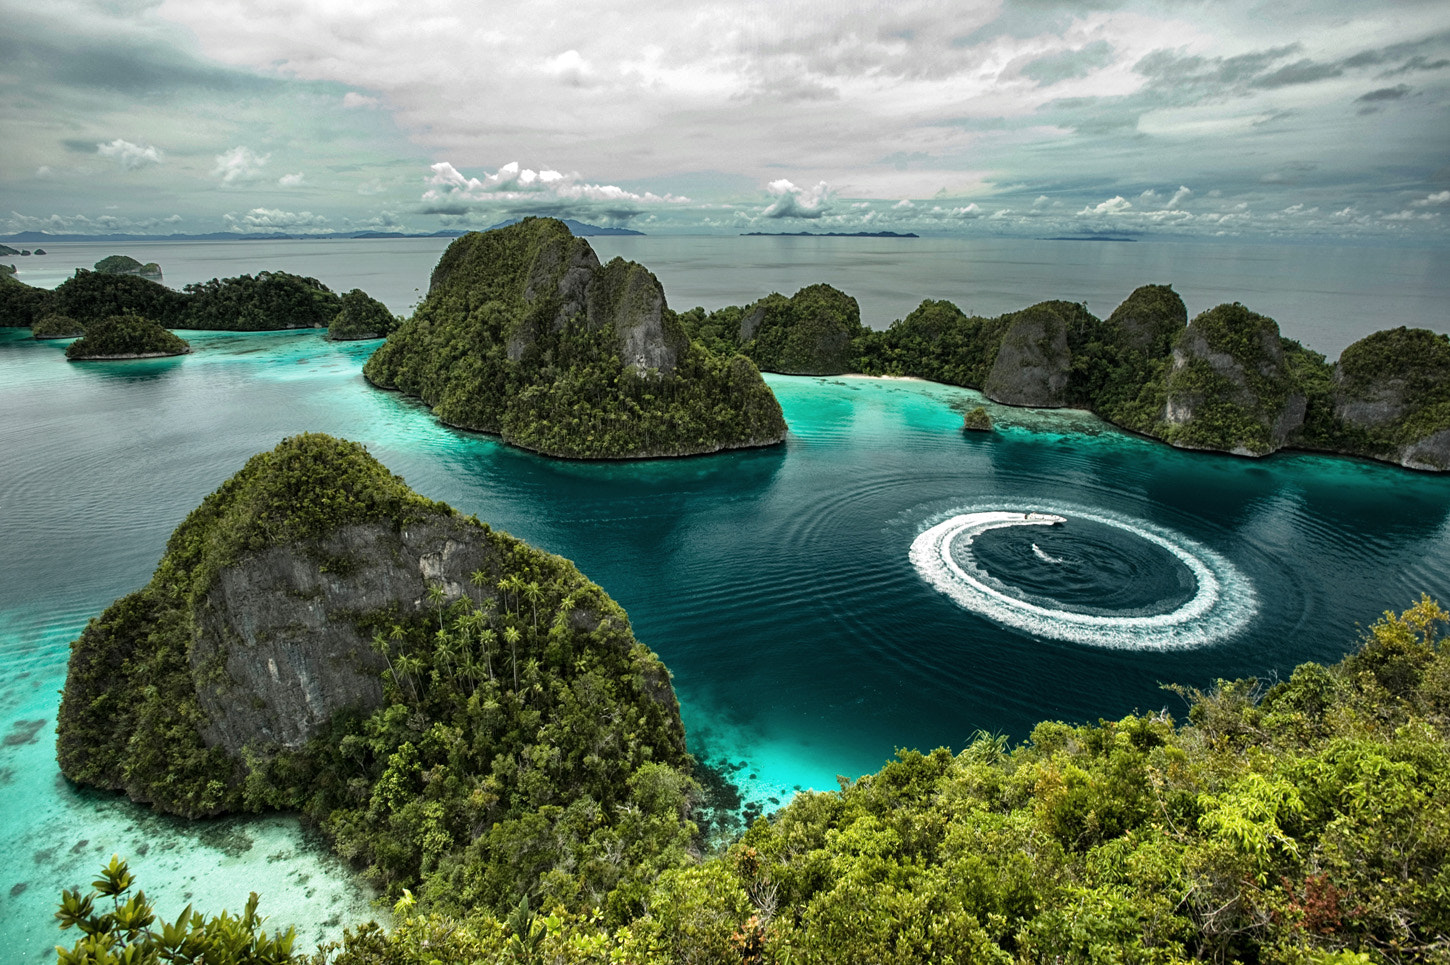 Photograph Manouver Boat at Raja Ampat by Ridwan Prasetyo on 500px